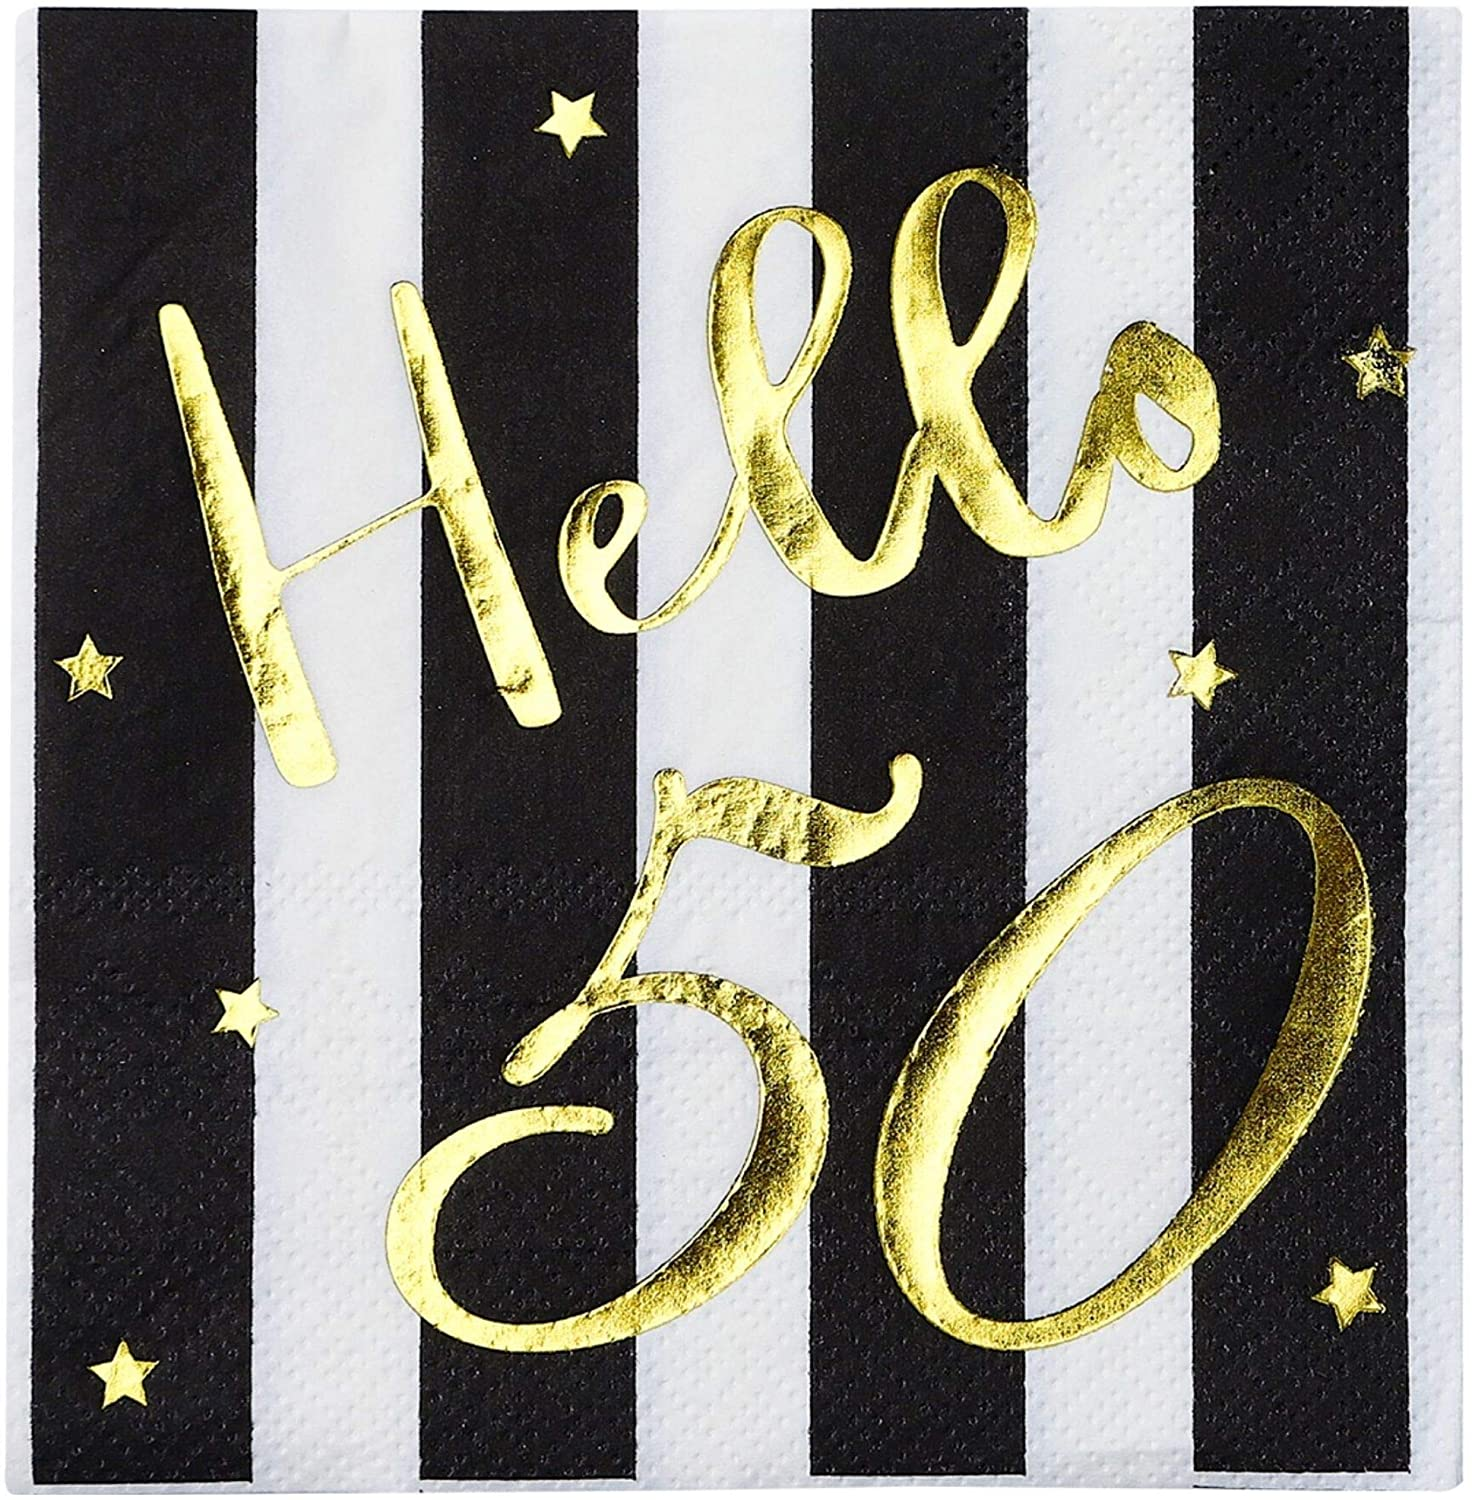 Hello 50 Cocktail Napkins - Happy 50th Birthday Decorations for Men Women | Folded 5x5 Inches Party Napkins | 3-Ply Paper Beverage Napkins, Black and Gold 50th Birthday Napkins, Wedding Anniversary